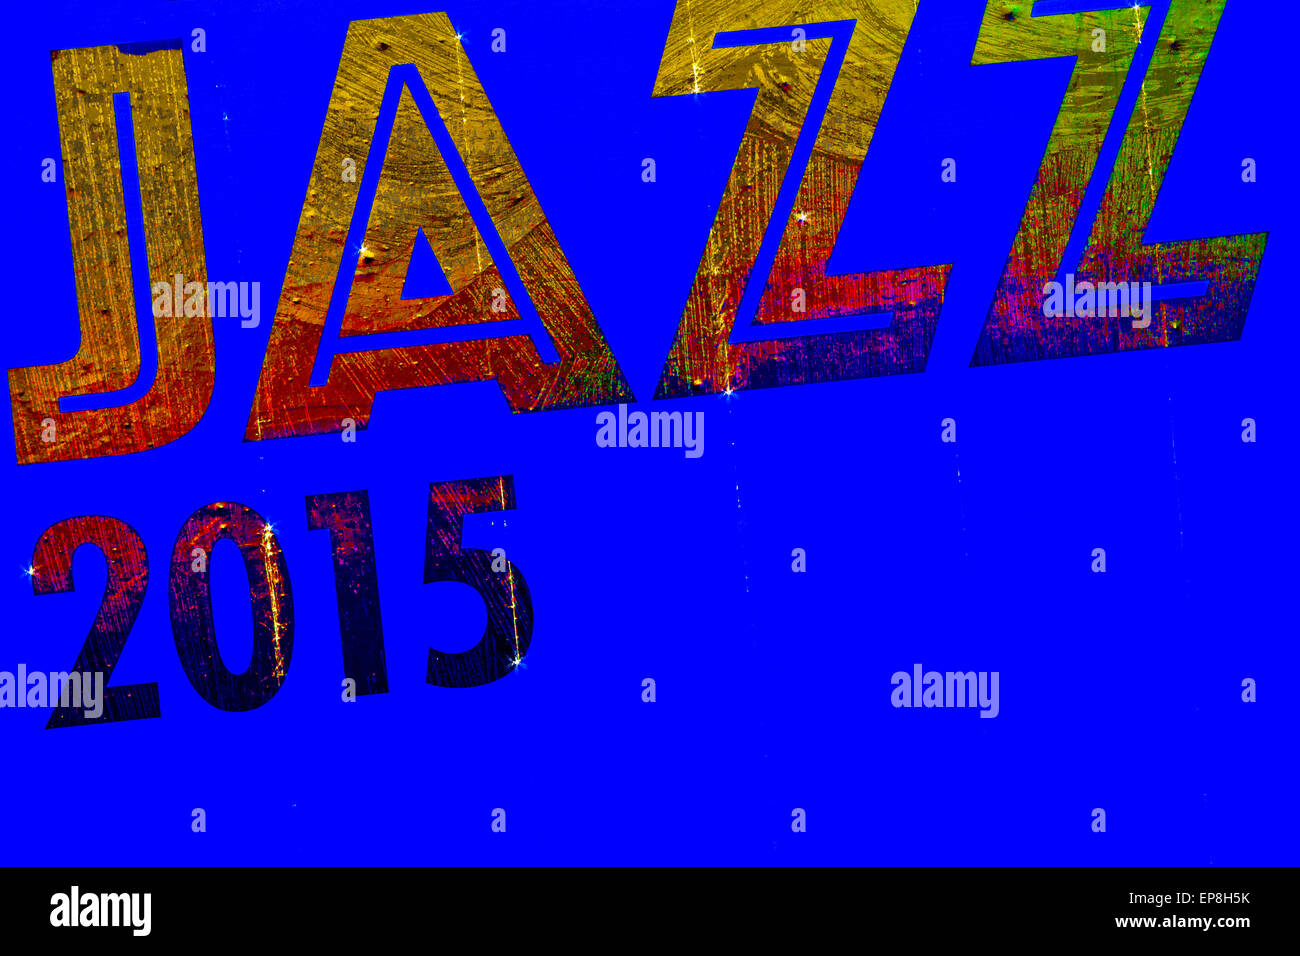 Graphic processing of the word jazz combined all-2015. - Stock Image